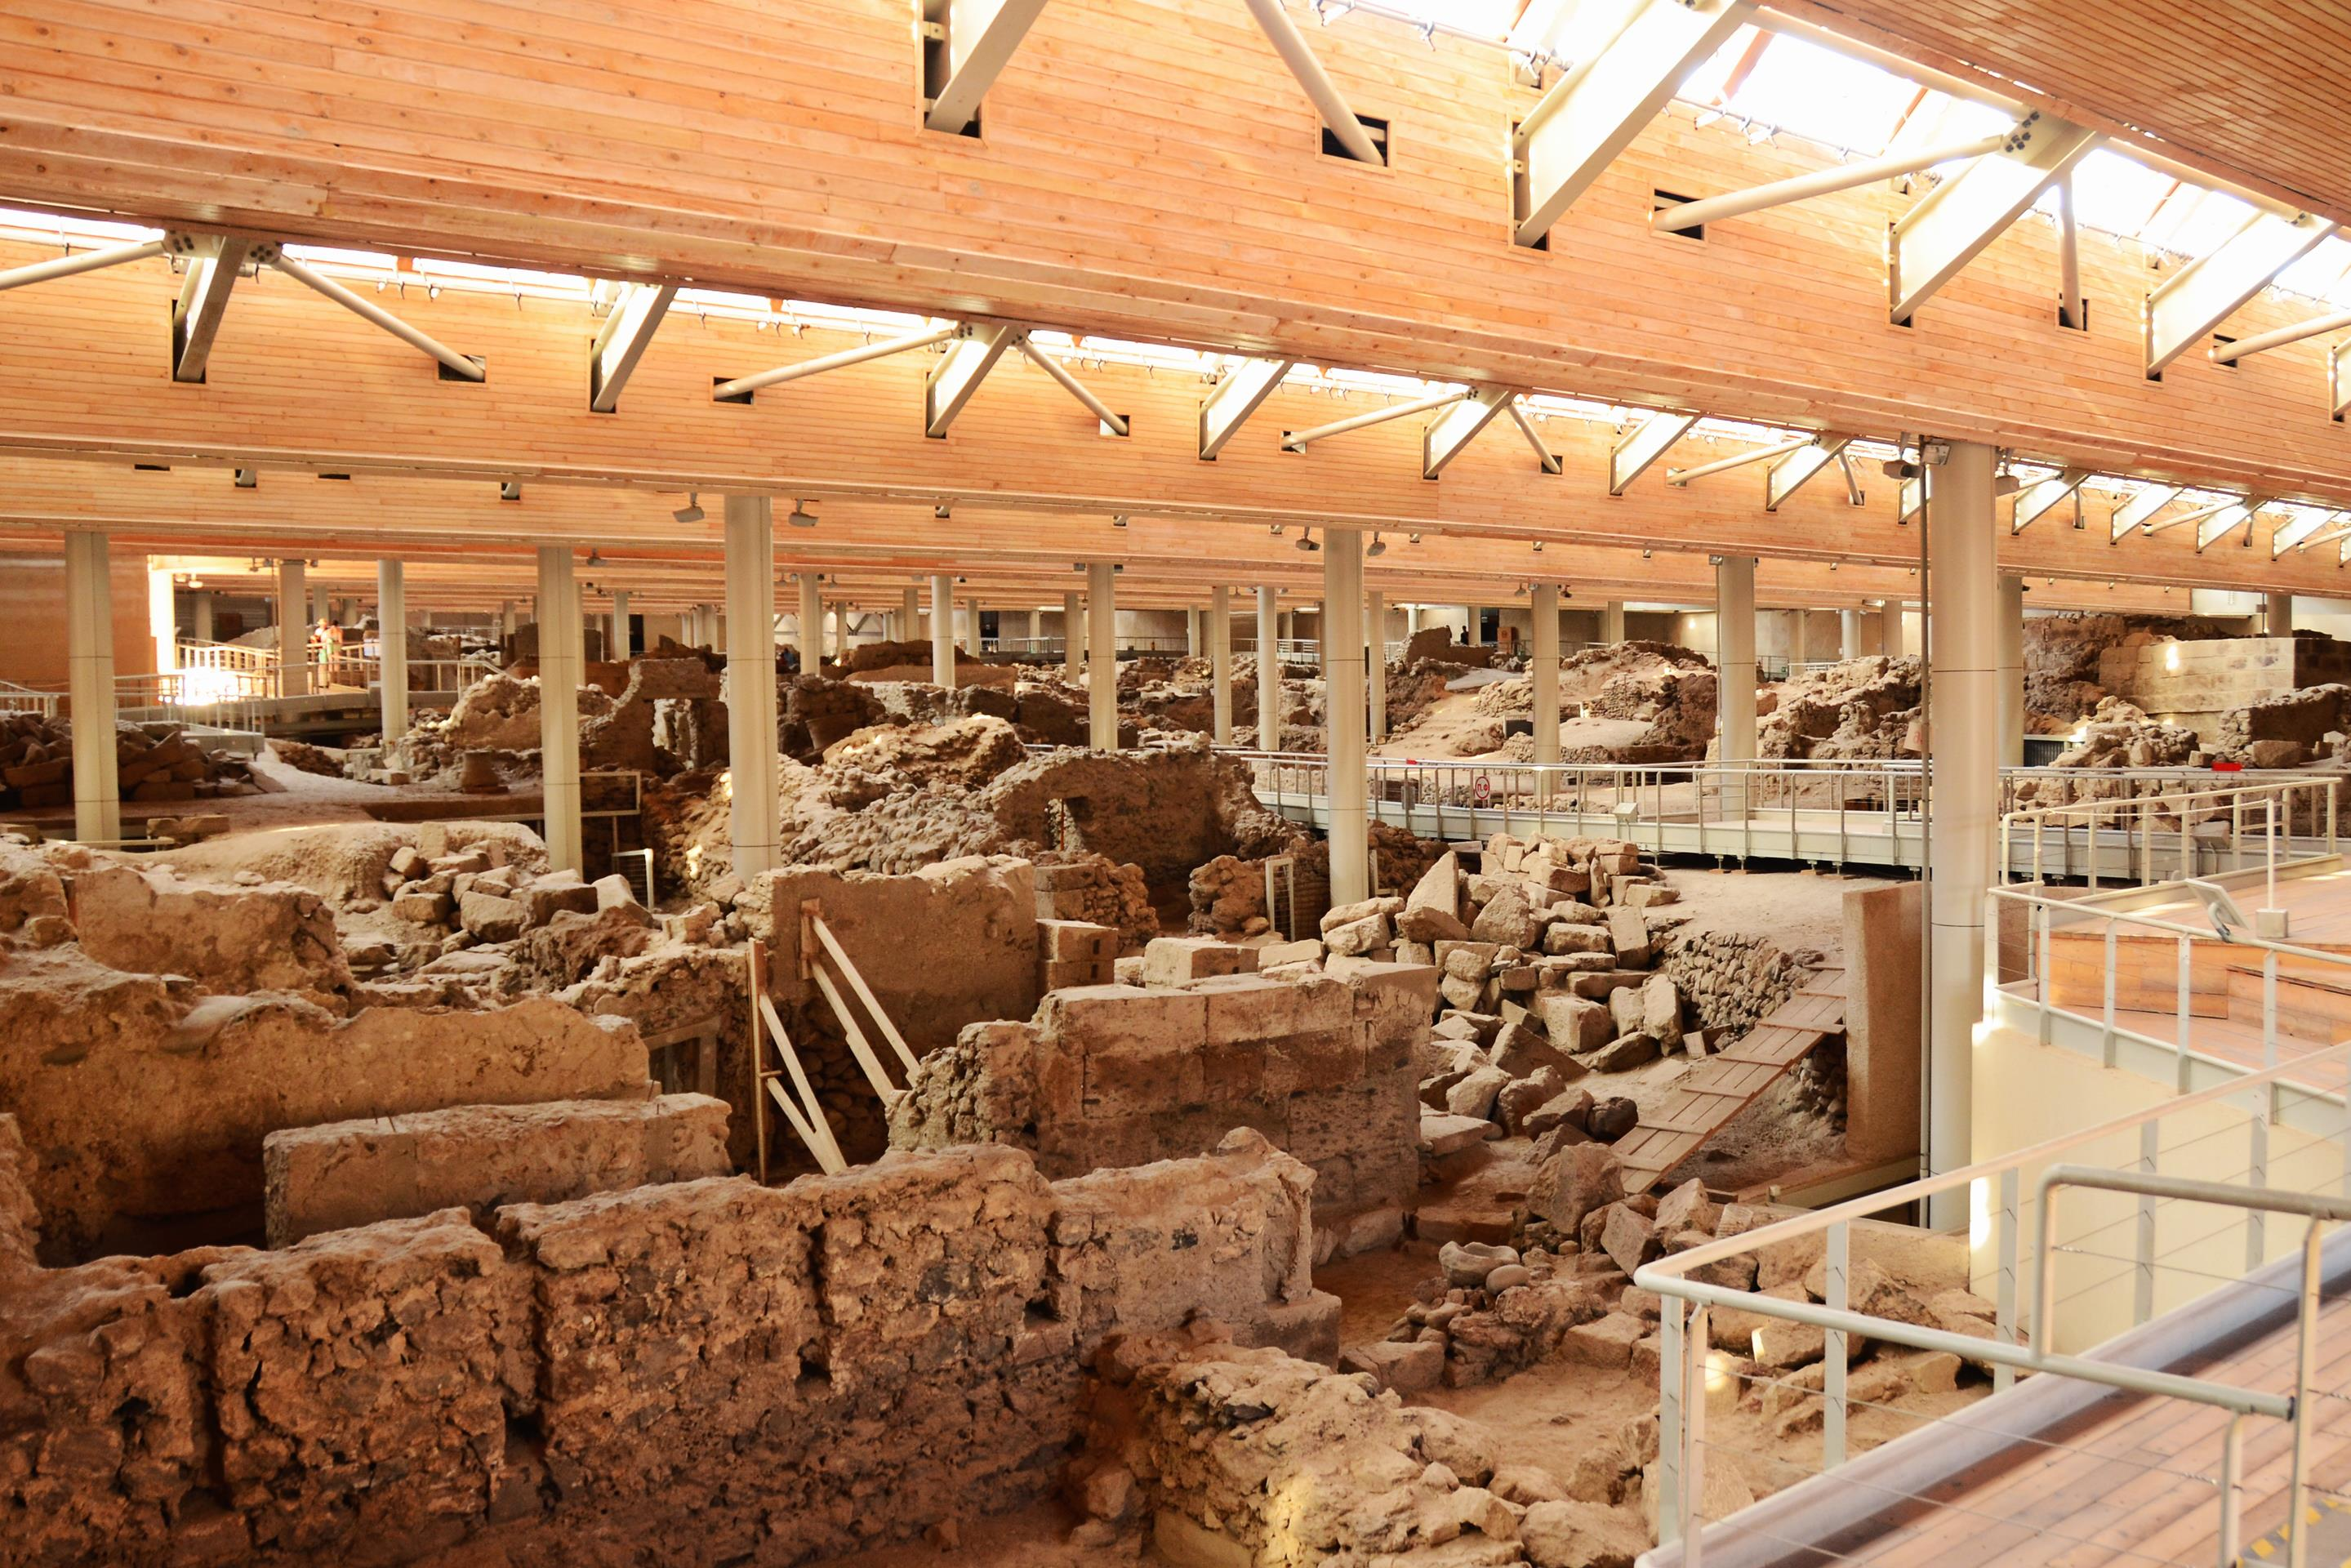 The archaeological excavation of Akrotiri, where unlike Pompeii, no human remains were found.